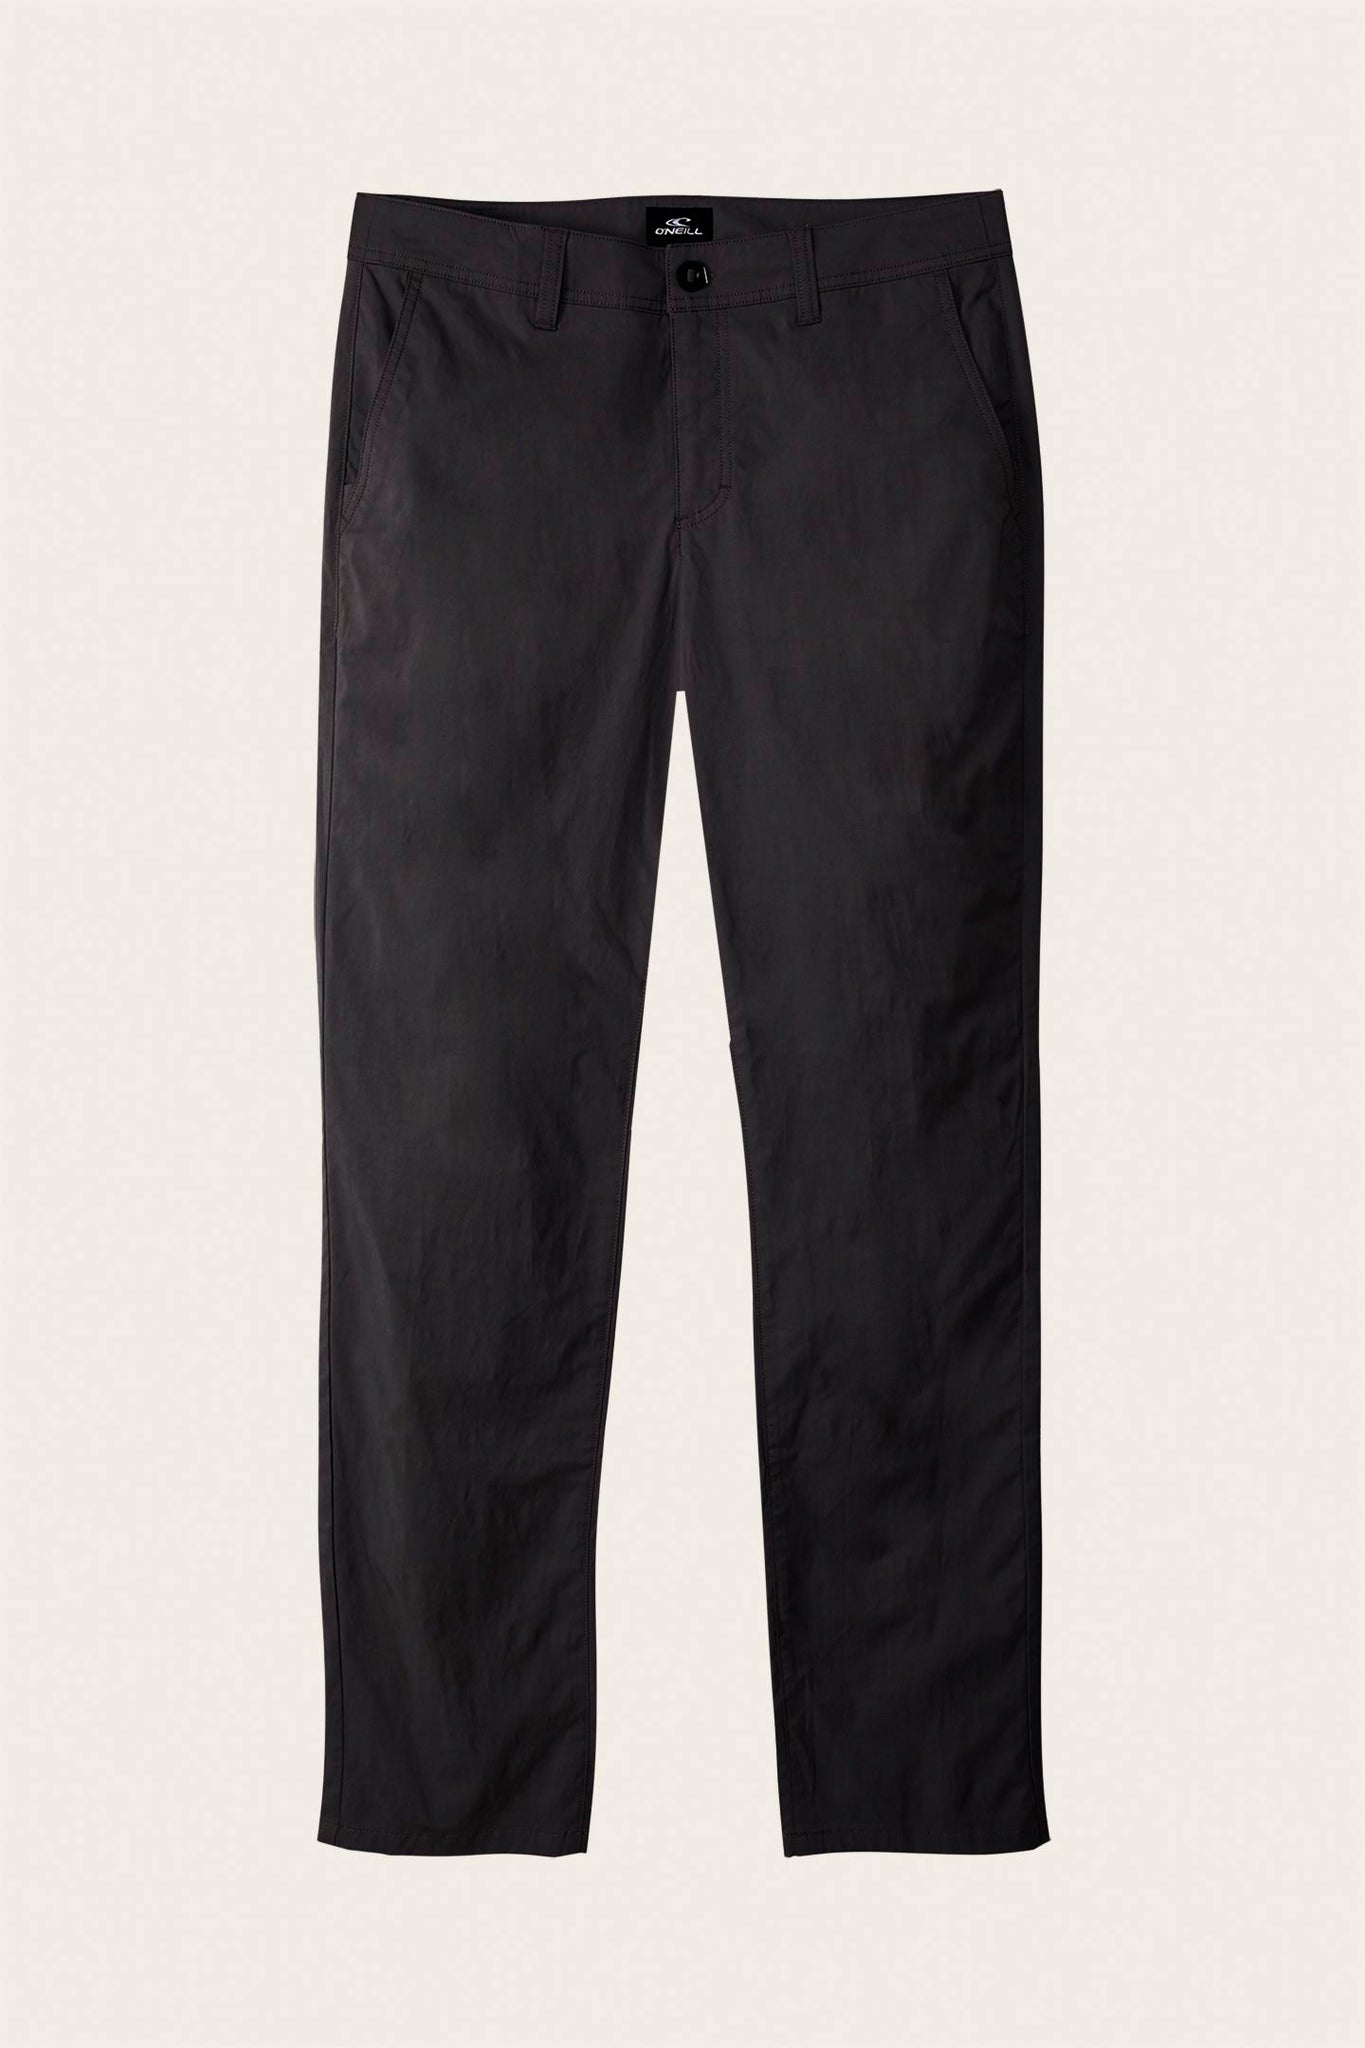 Mission Hybrid Chino Pants - Black | O'Neill